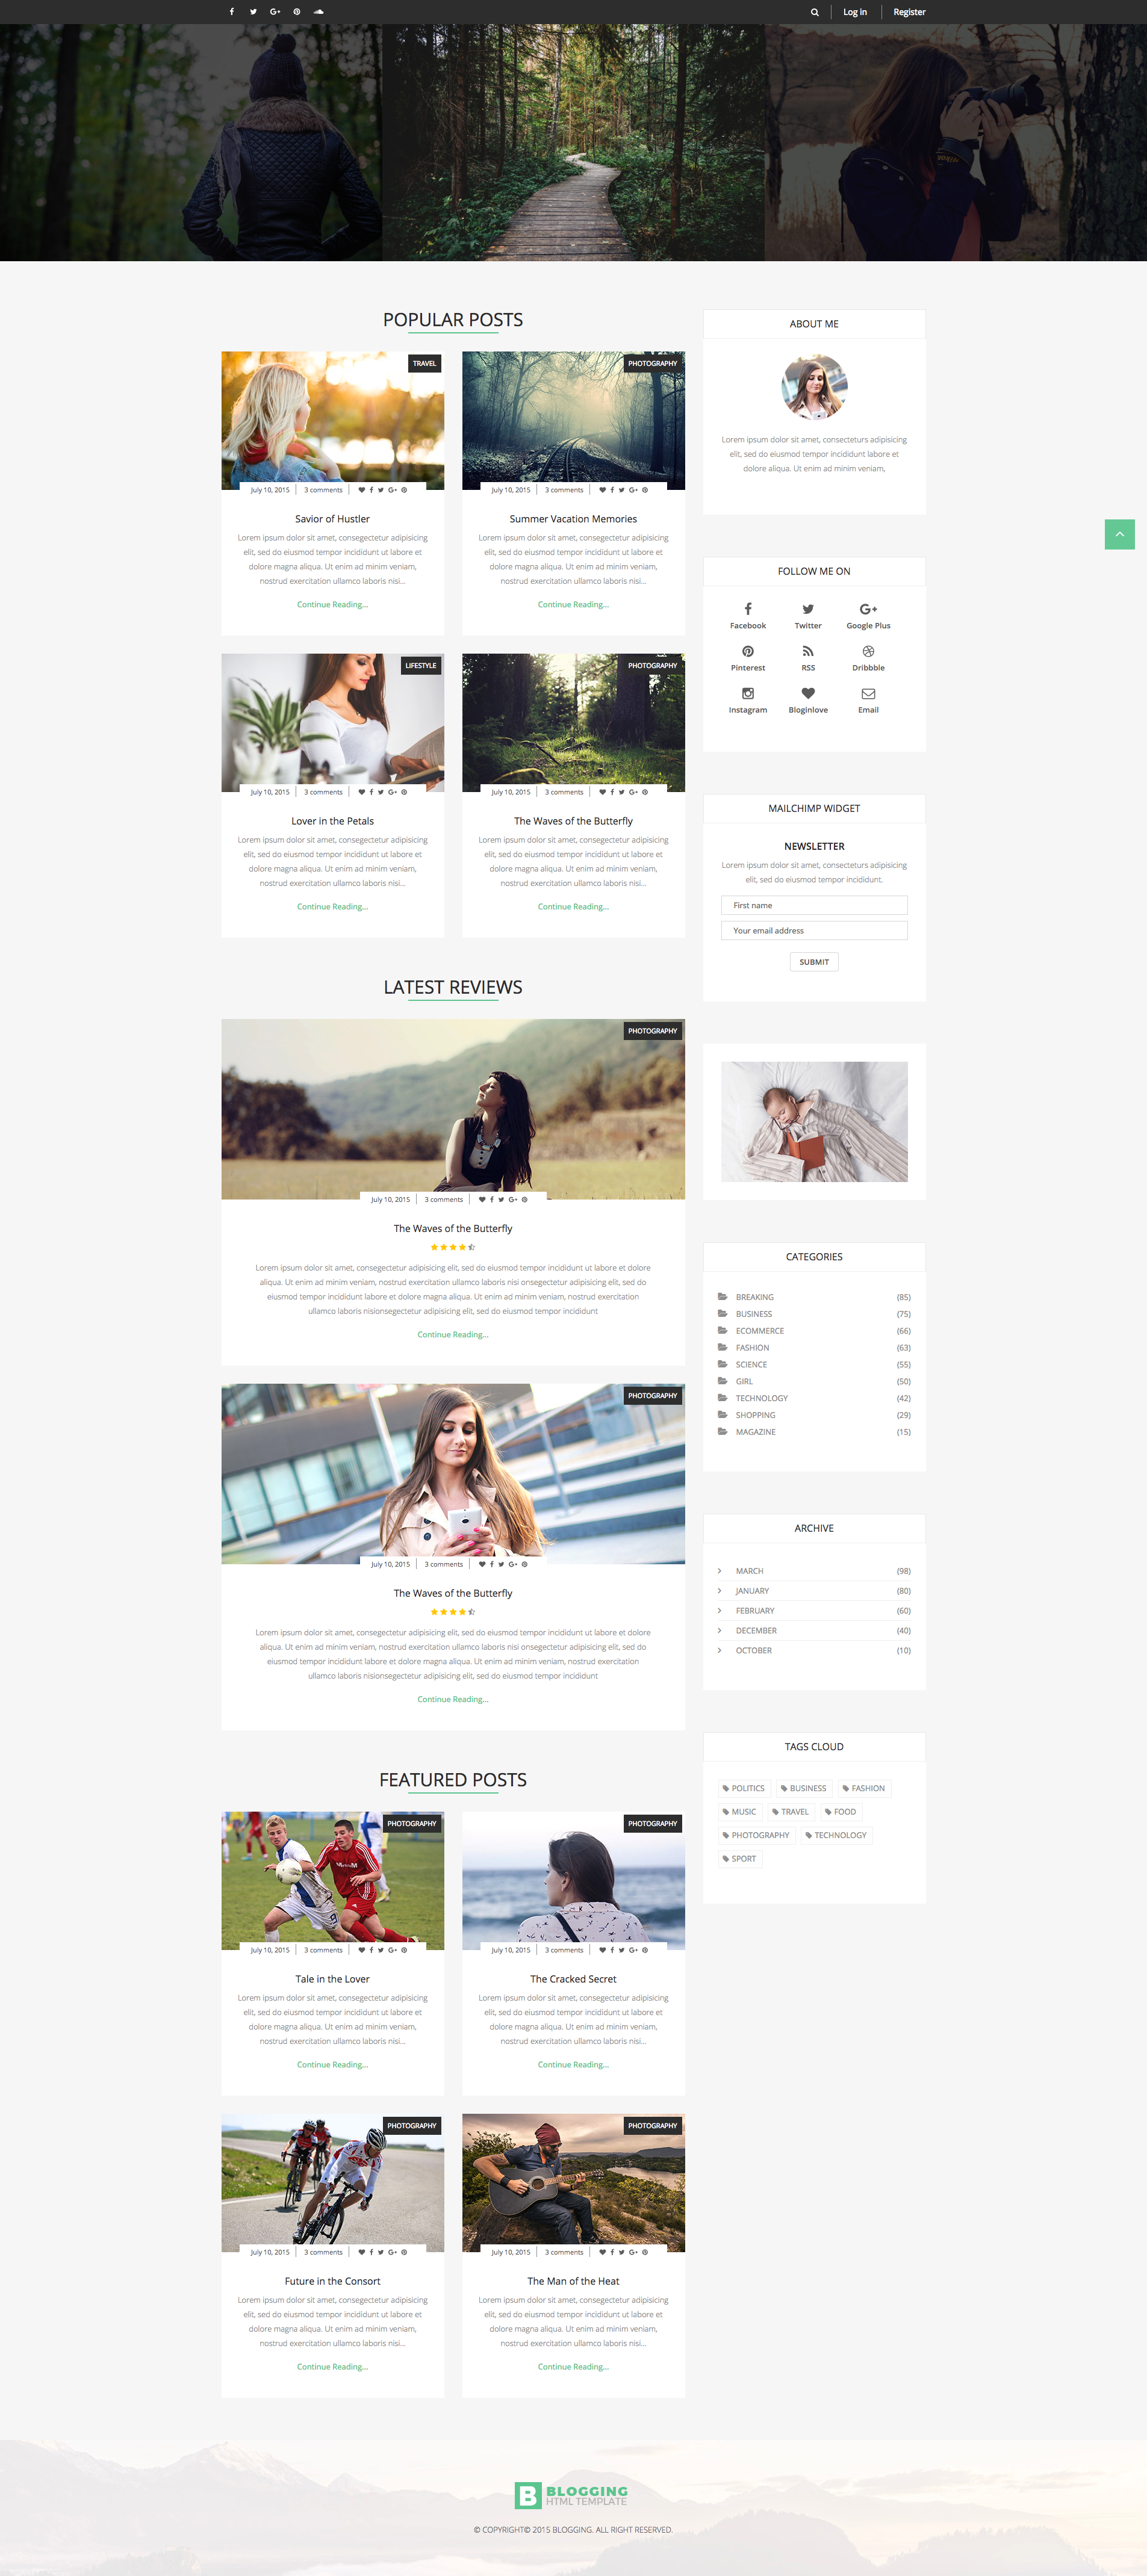 Blogging - Responsive Blog Template  The template has full-width